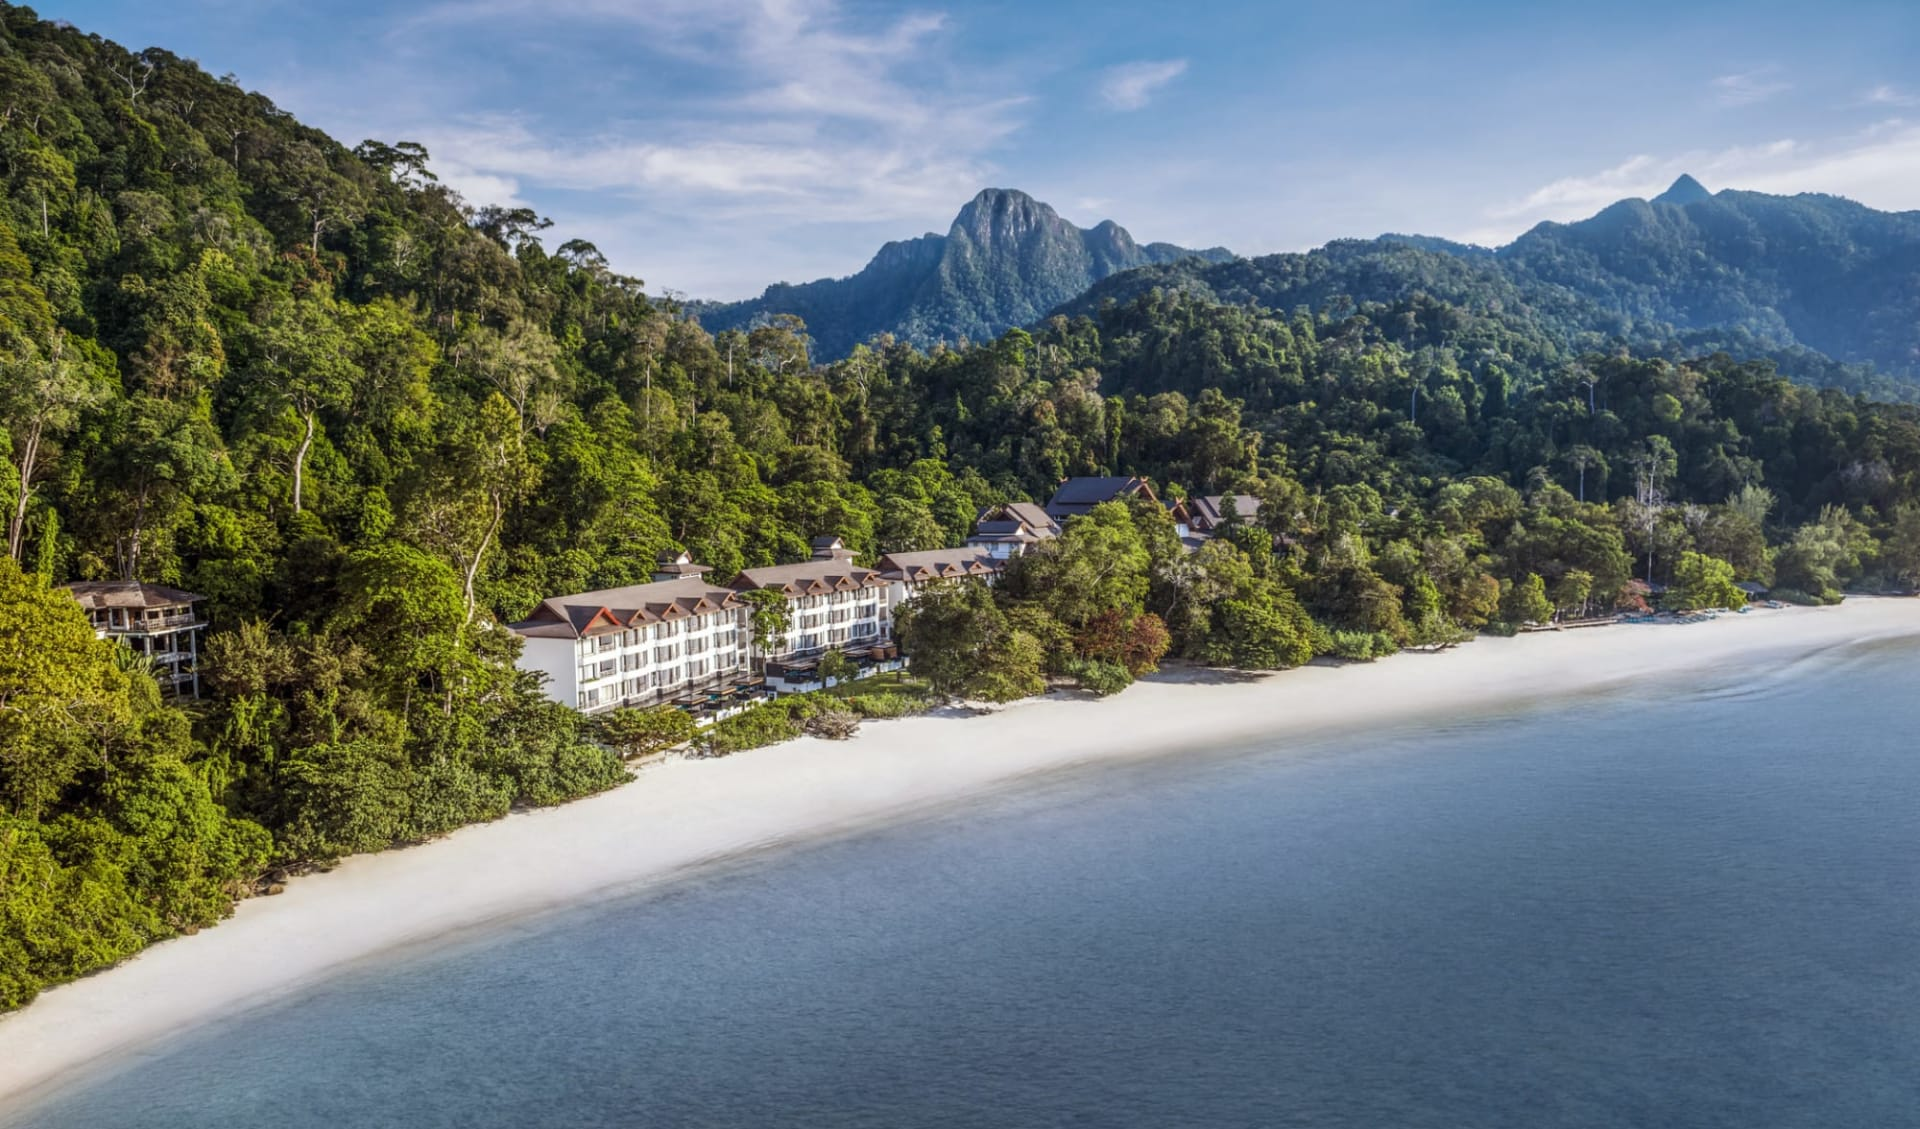 The Andaman in Langkawi: The Andaman uniquely set in the rainforest between the Mat Cincang mountain